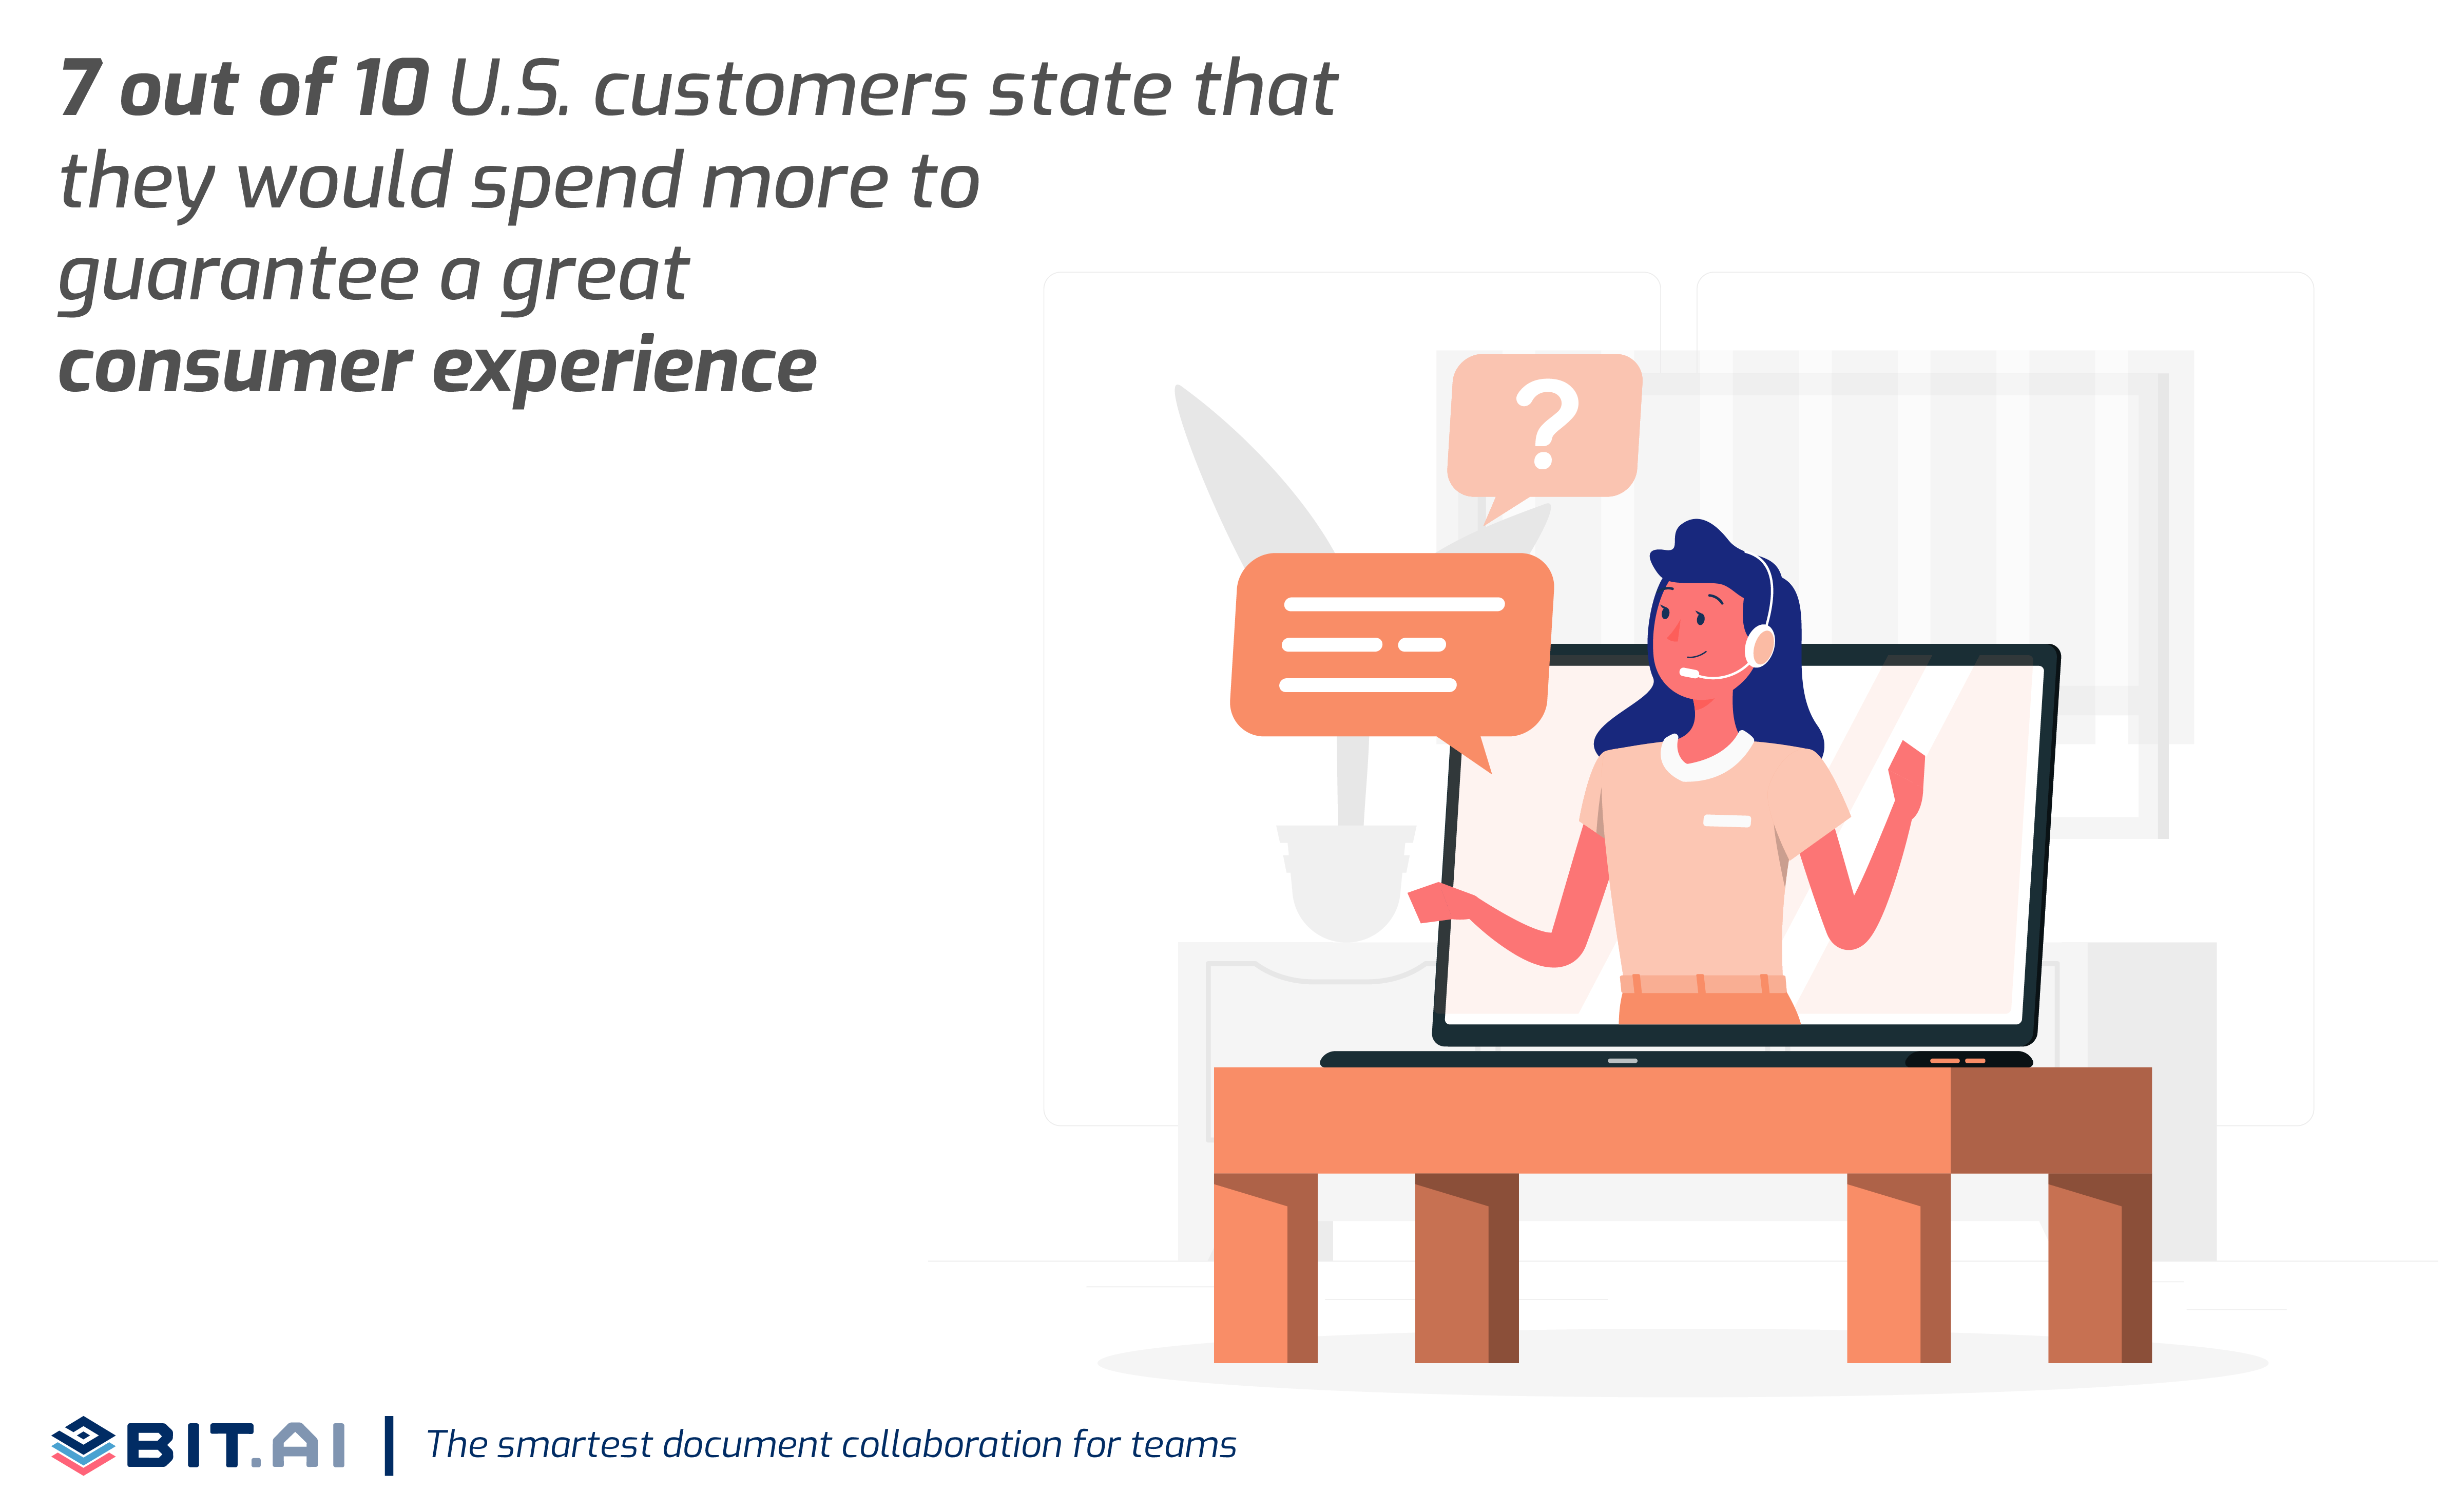 Statistic illustration related to customer service